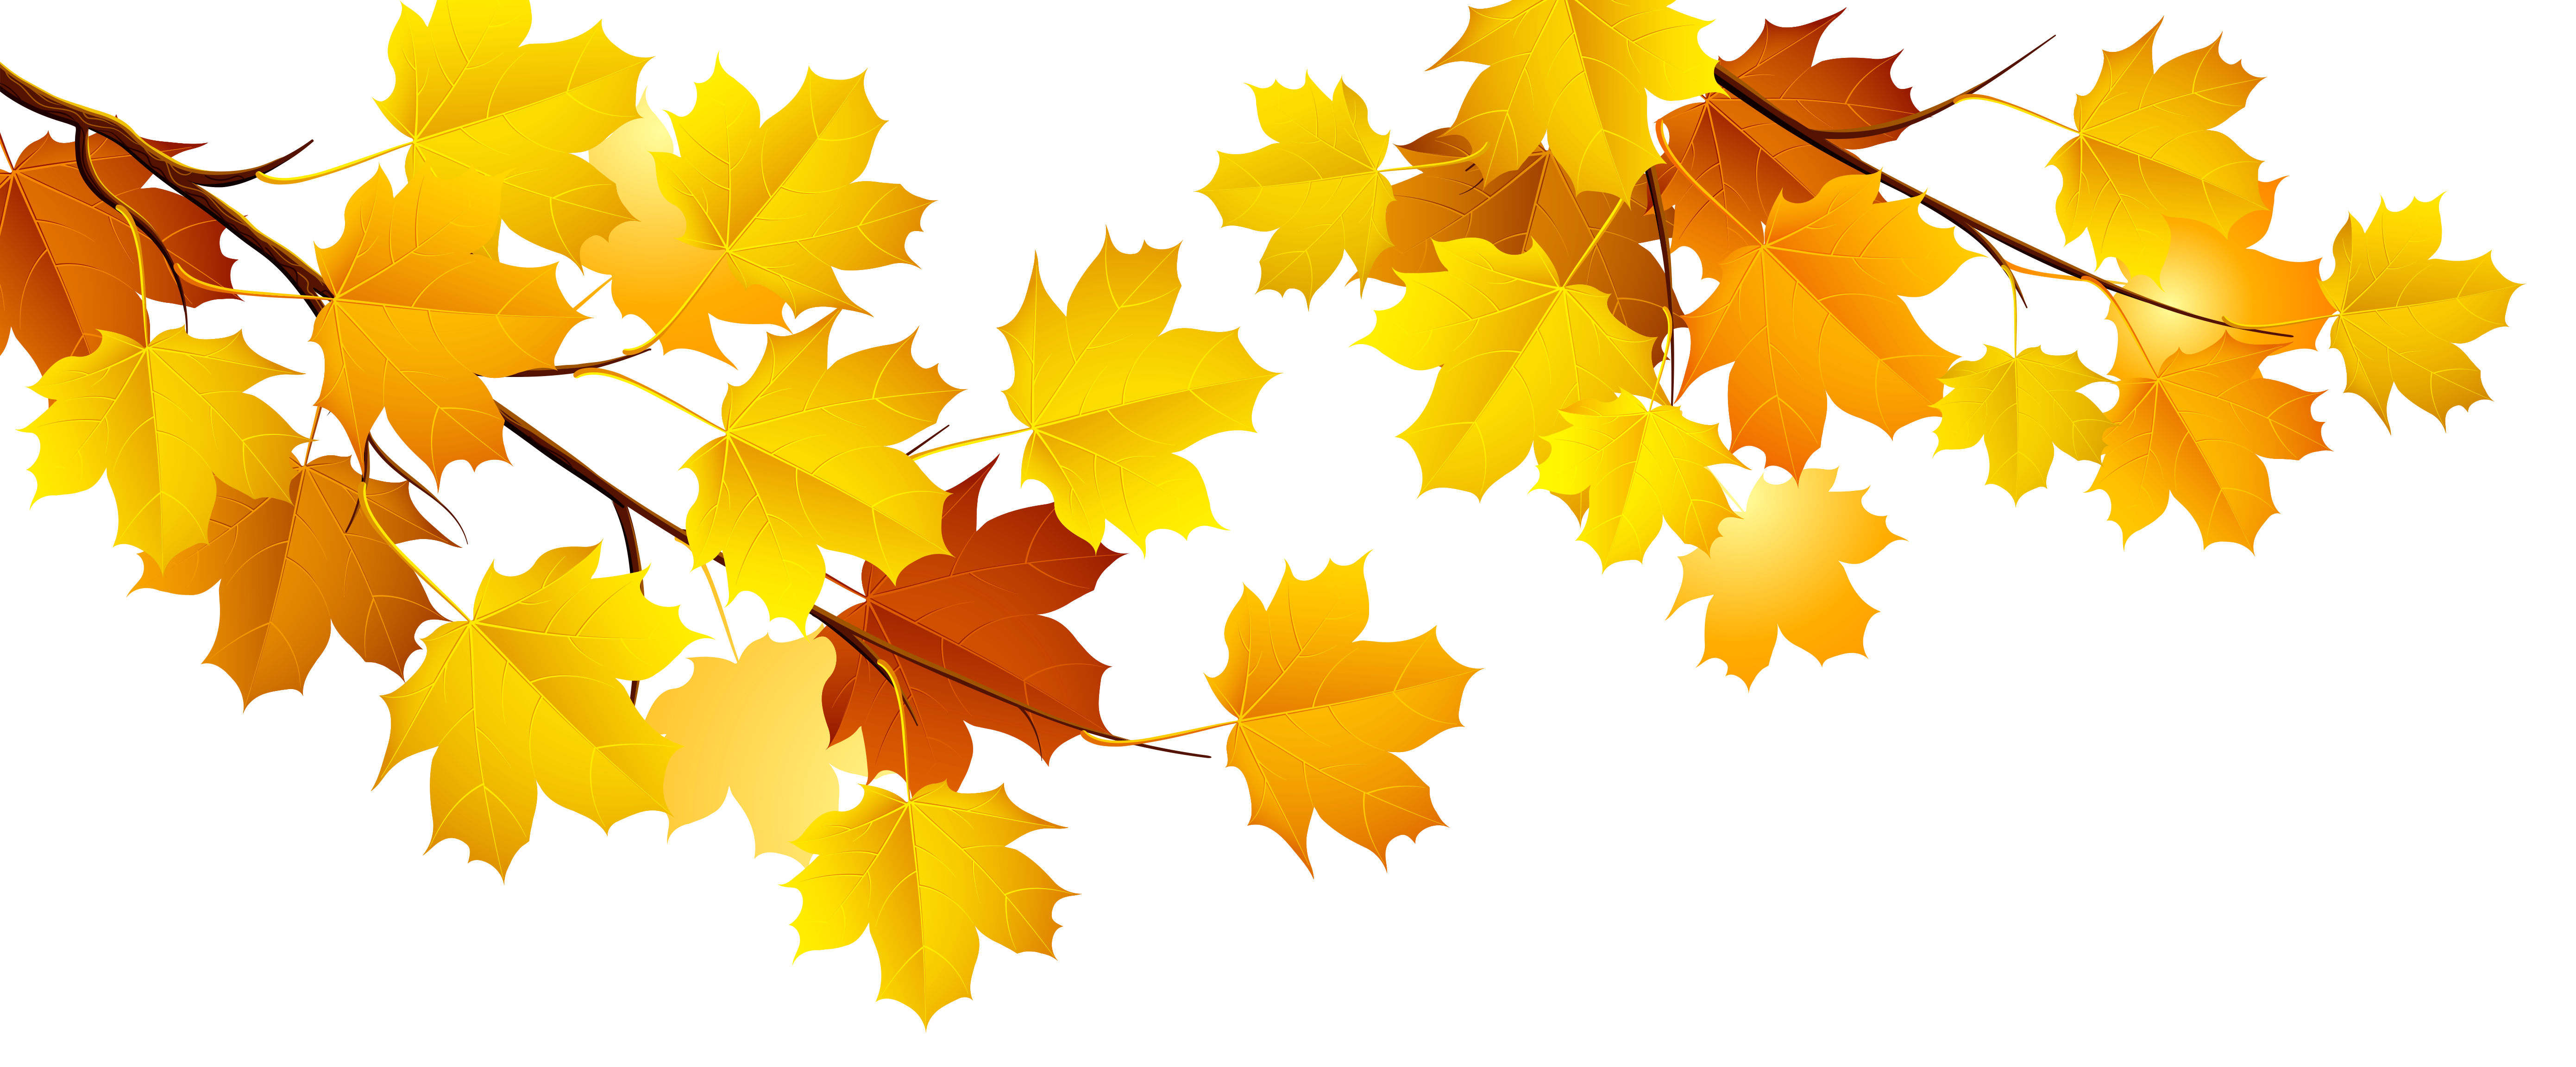 fall tree branch clipart png - Clipground